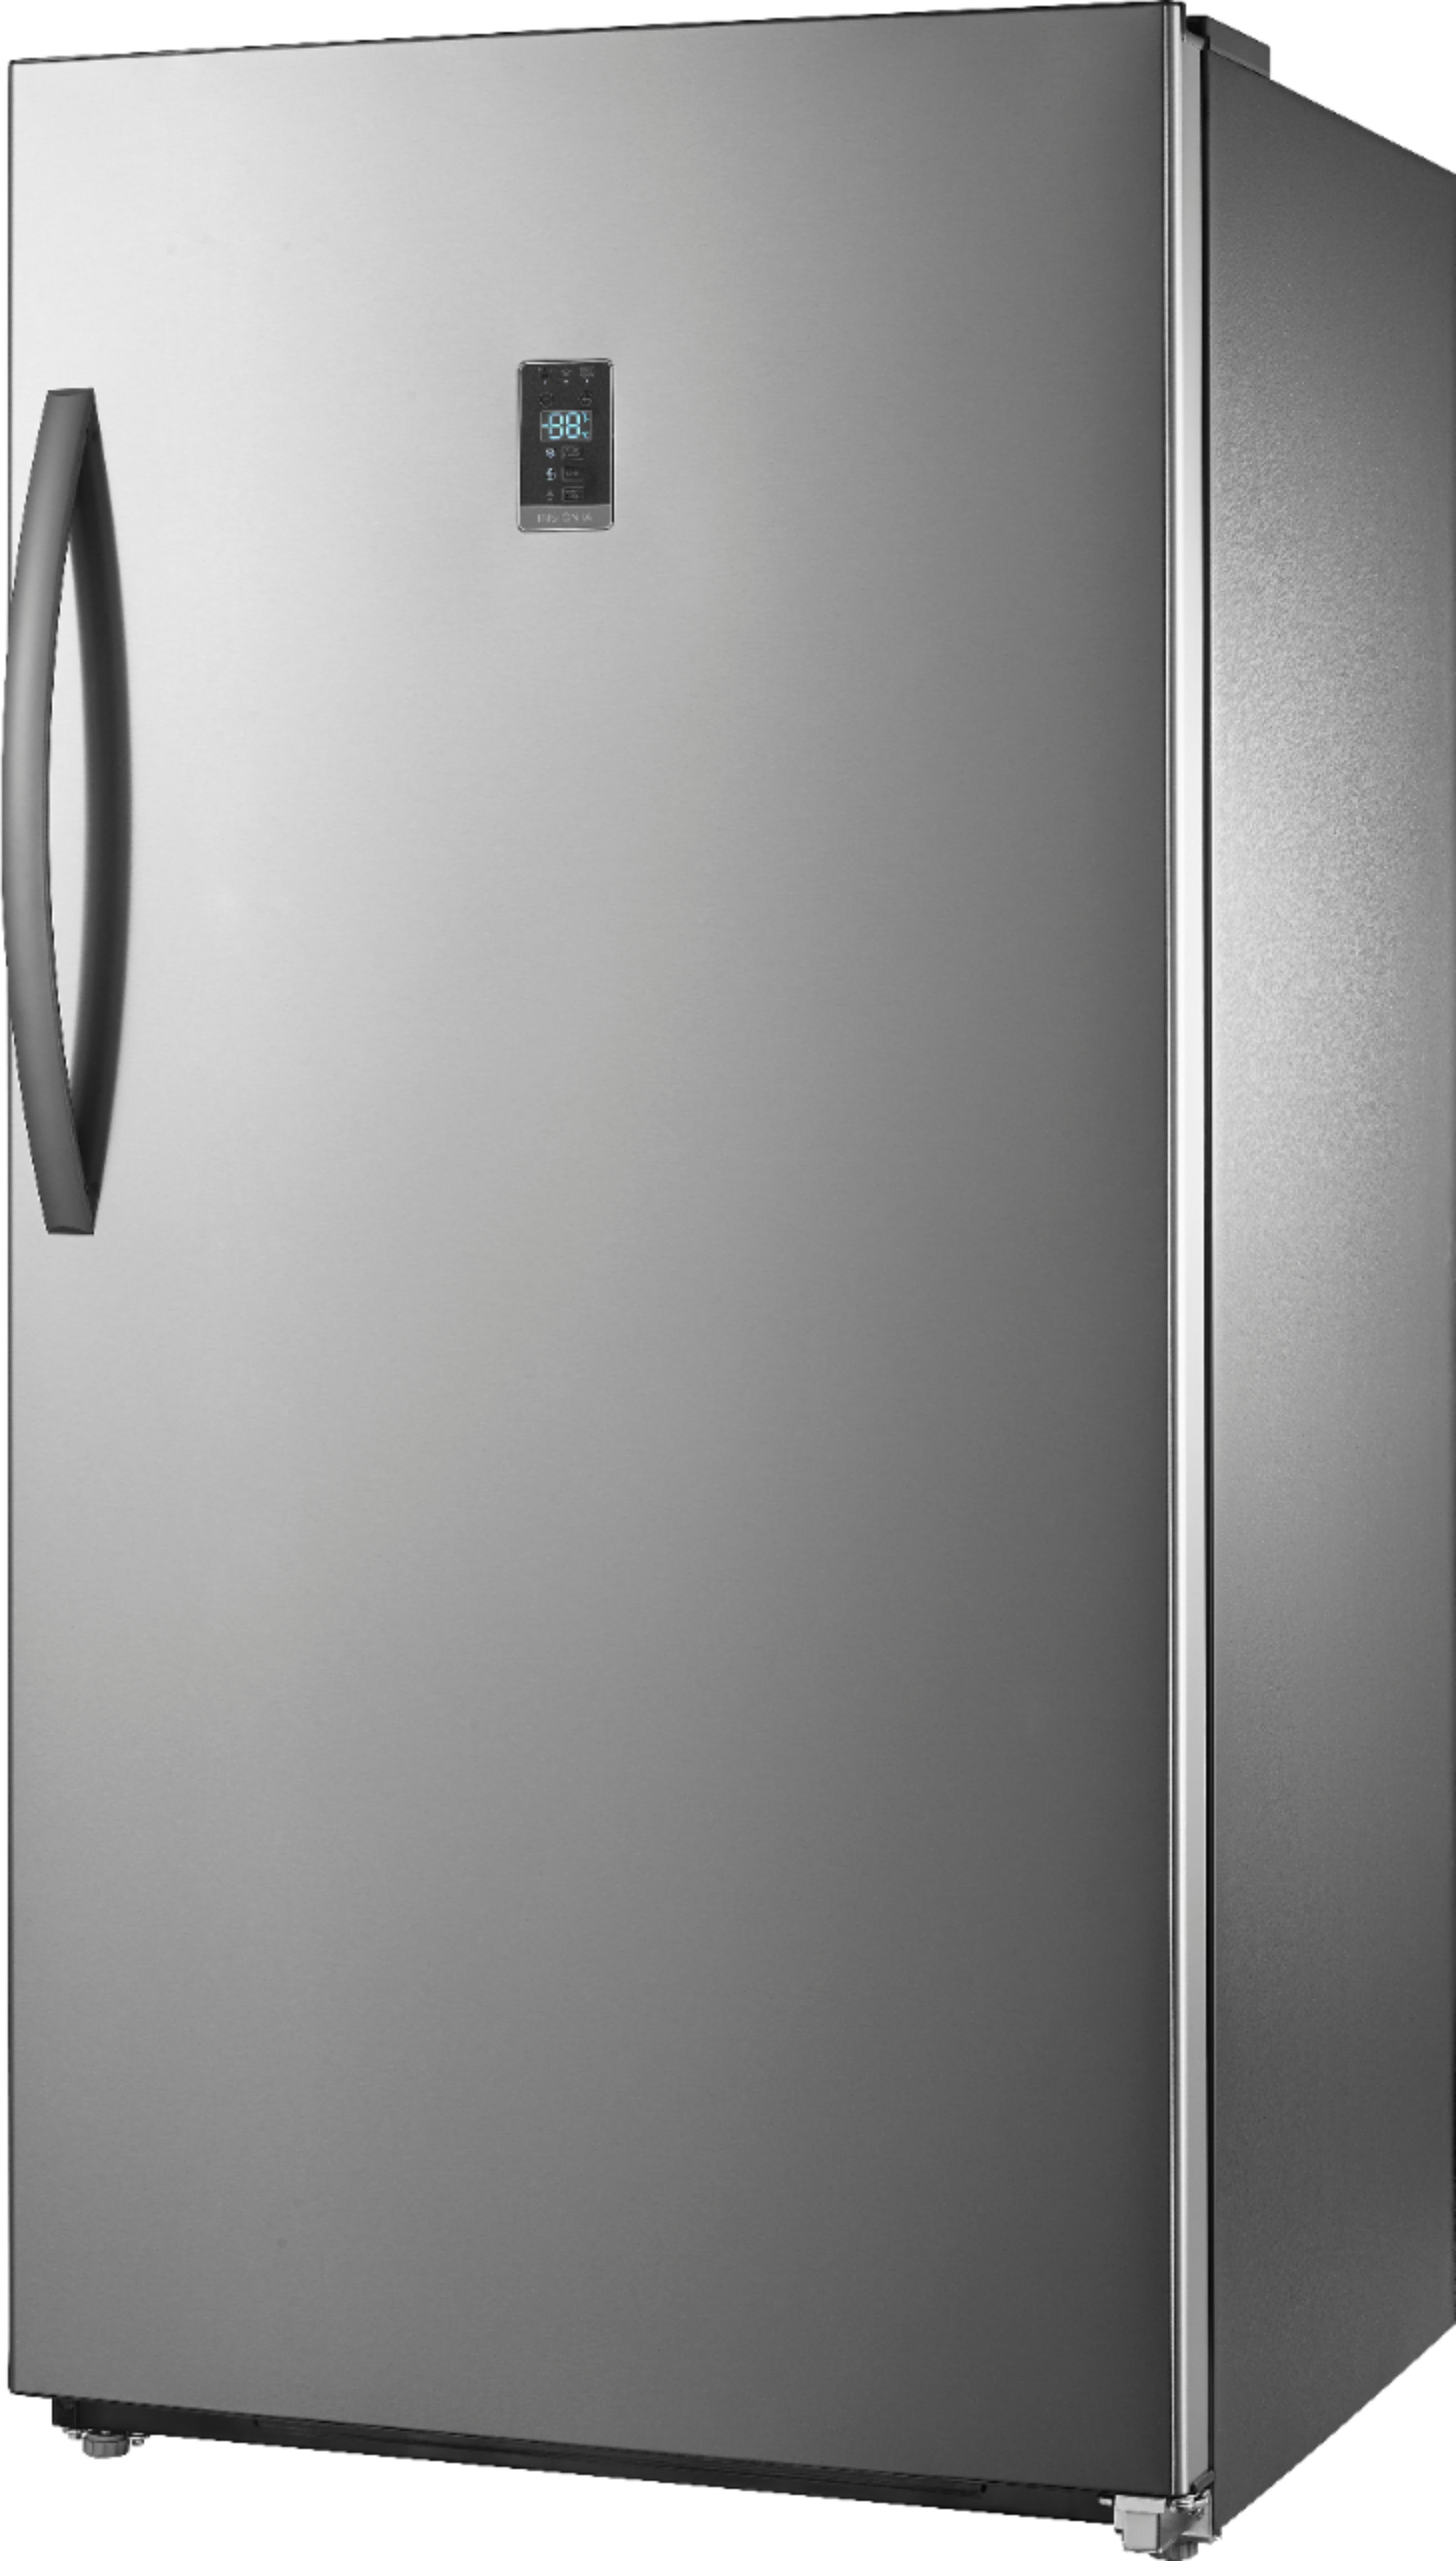 Small Stand Up Freezer Insignia 17 Cu Ft Frost Free Upright Convertible Freezer Refrigerator Stainless Steel